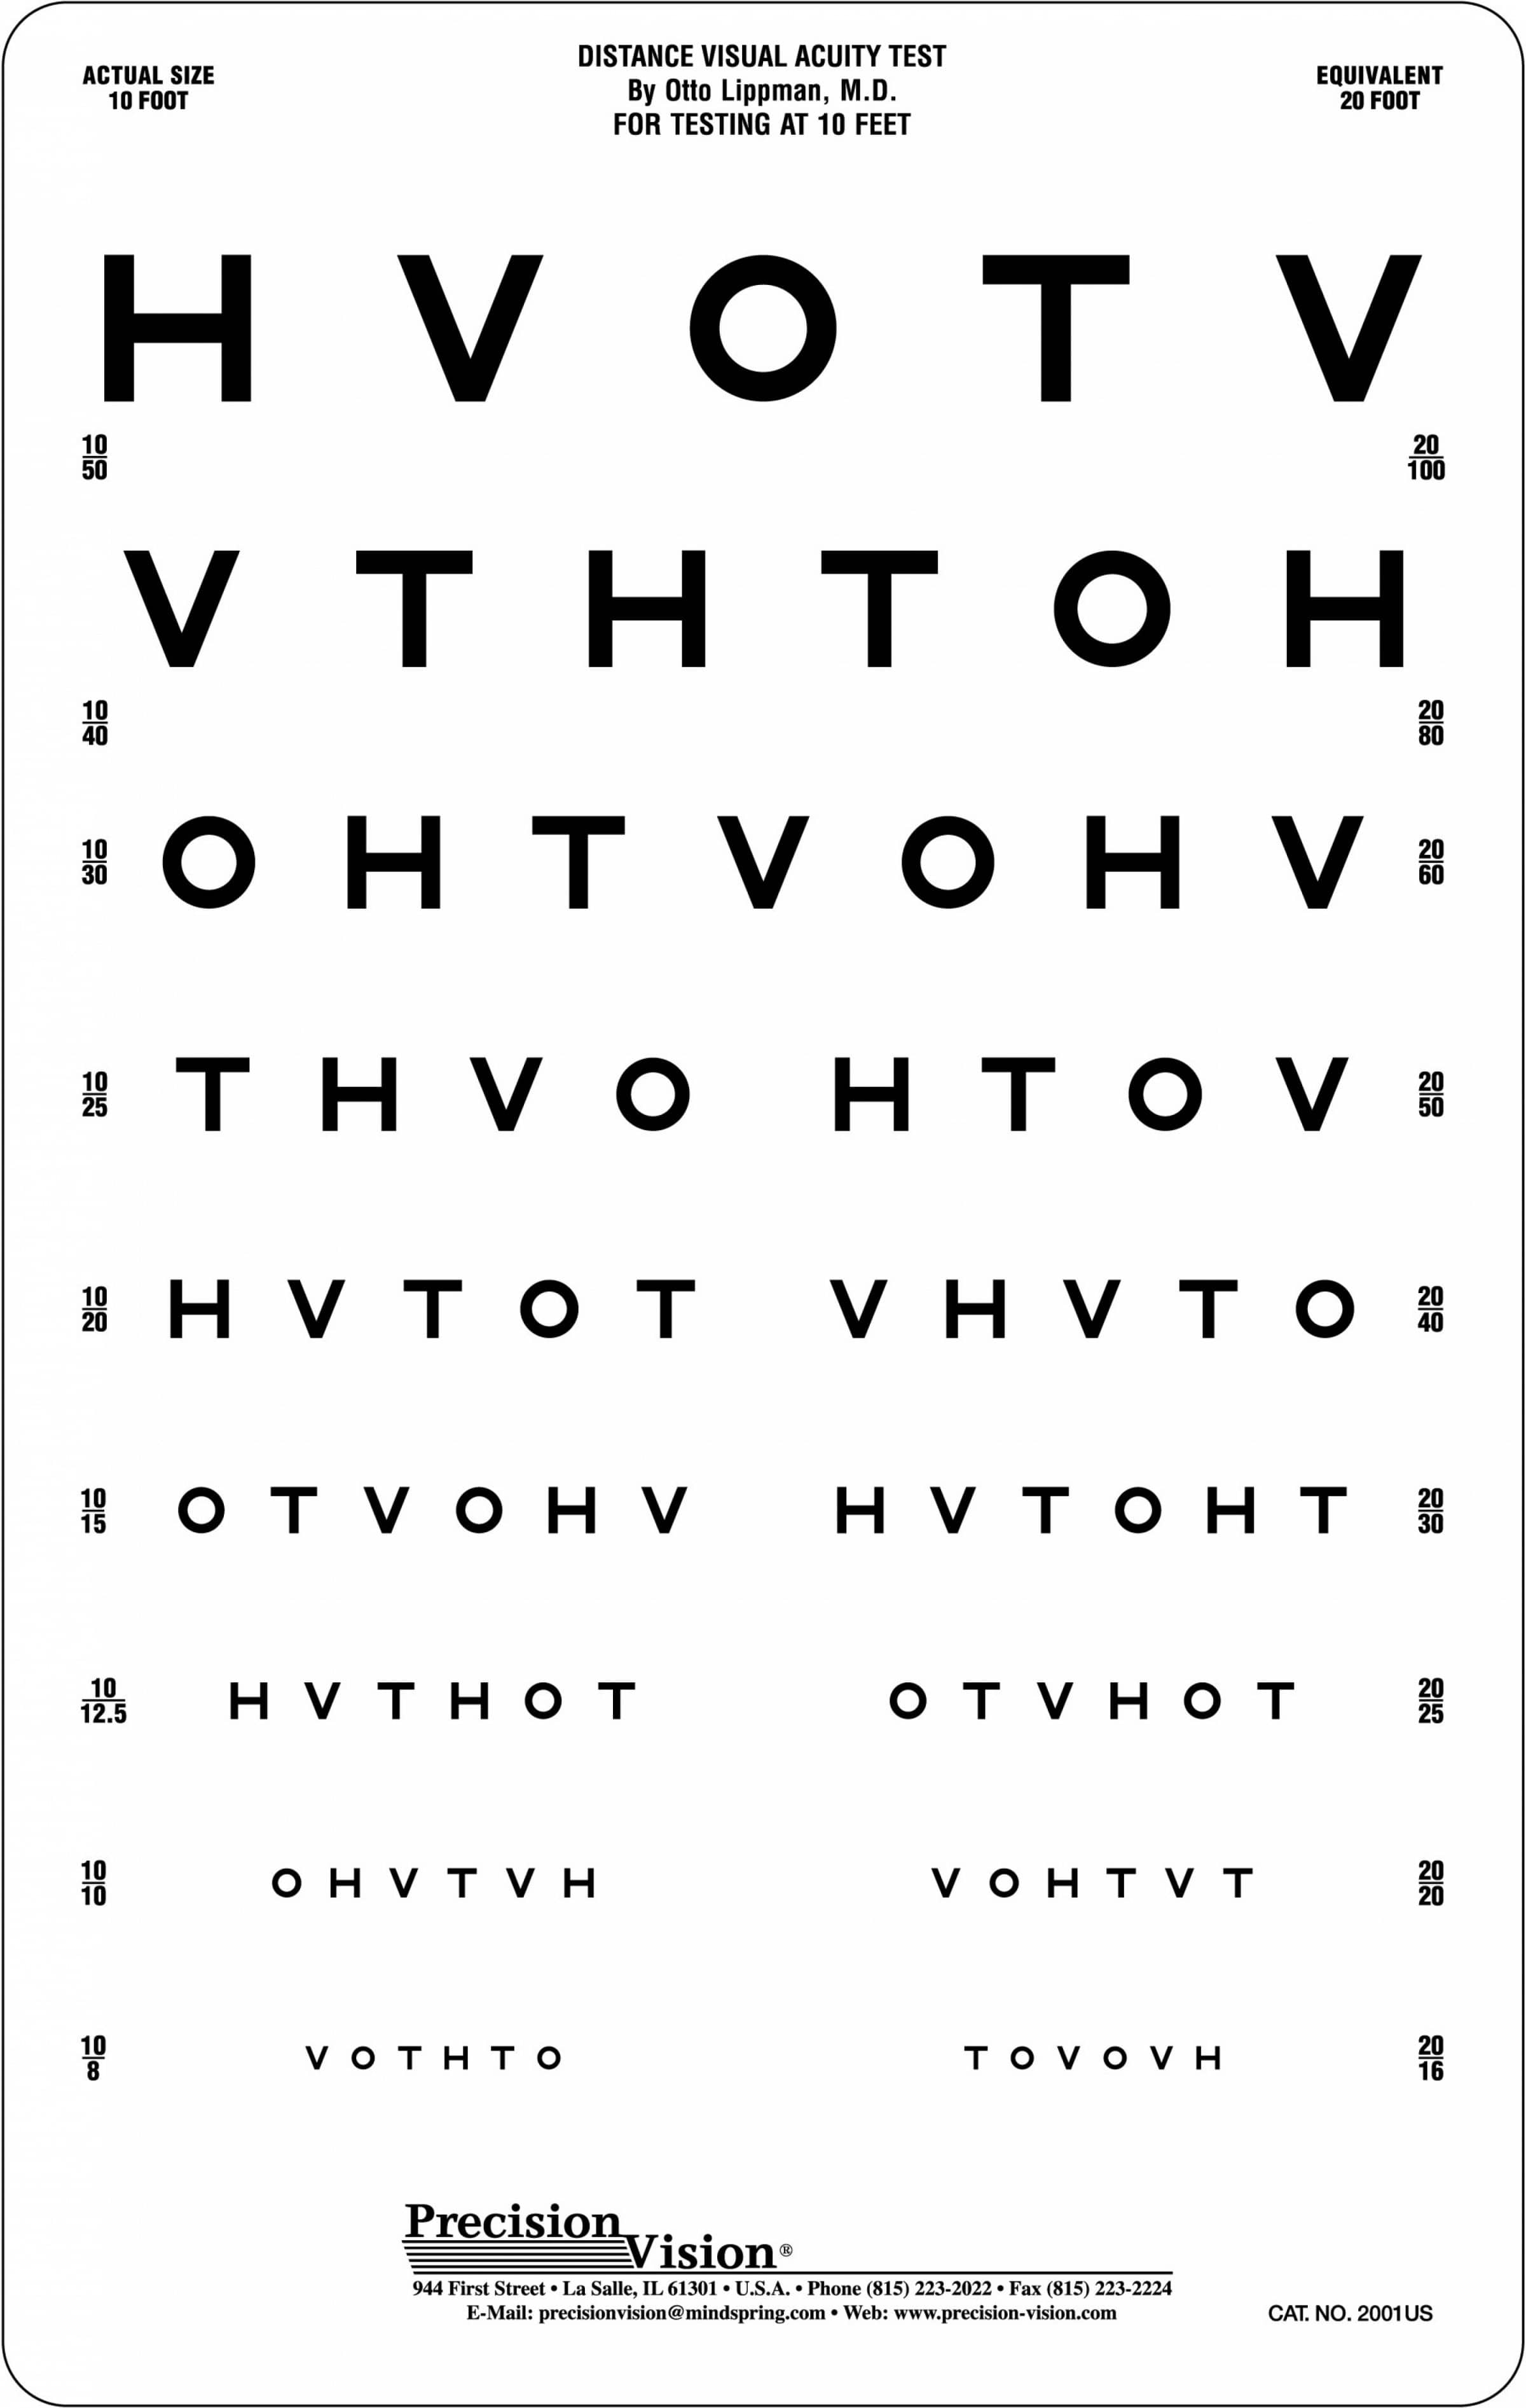 This is an image of Vibrant Printable Vision Test